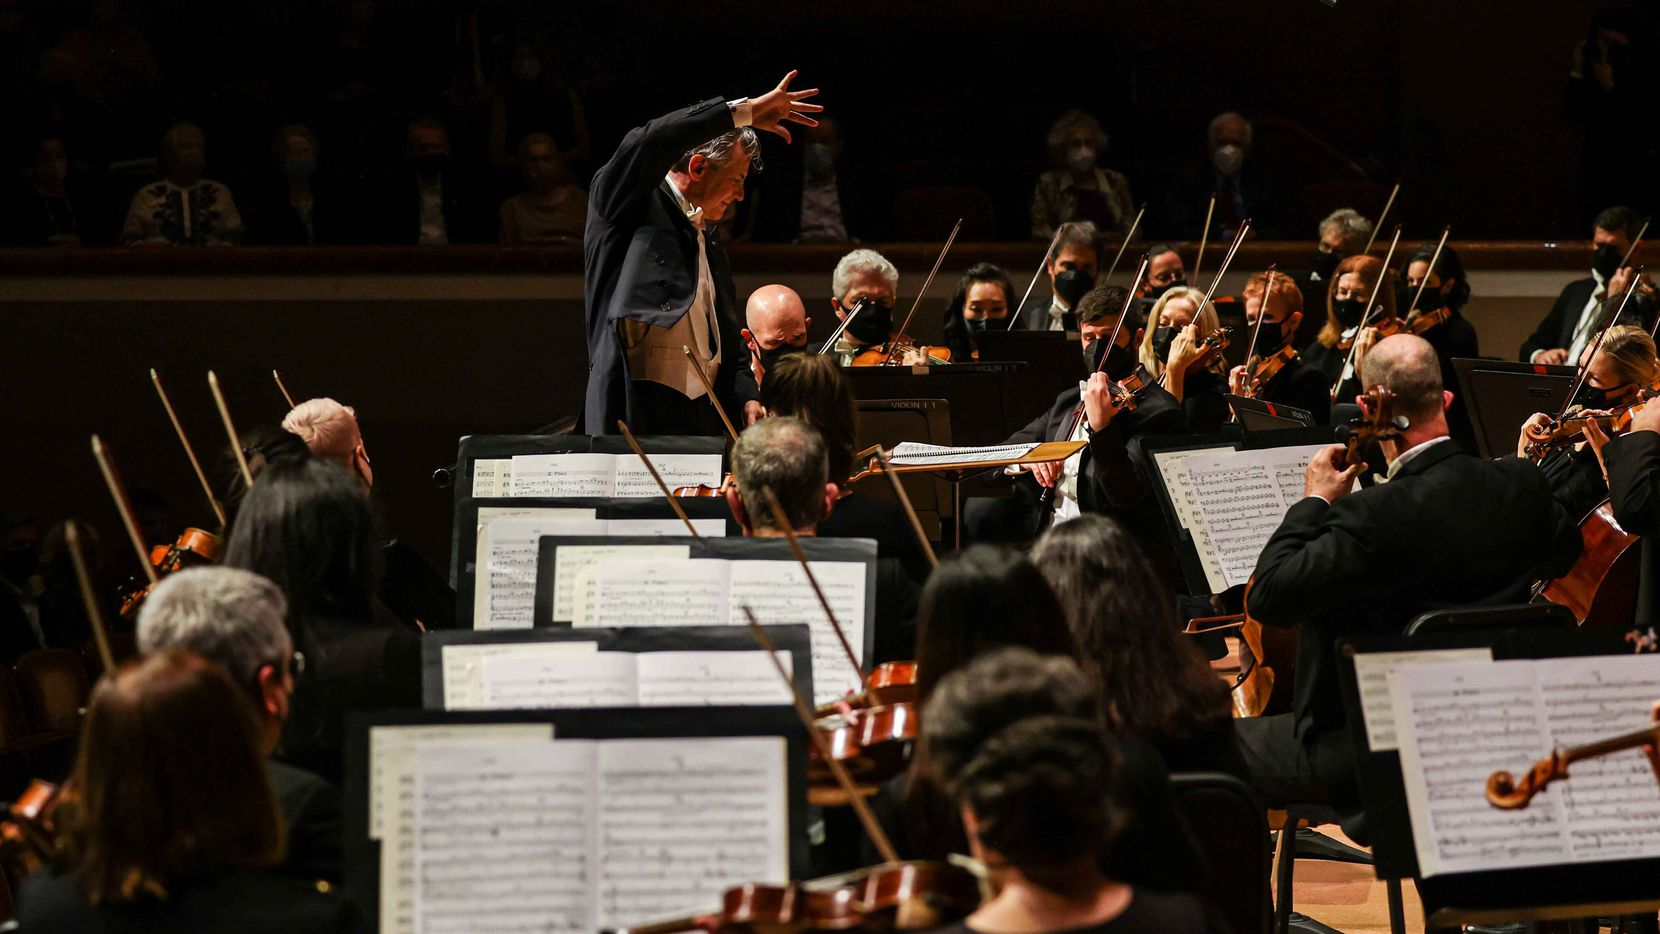 Music director Fabio Luisi conducts the Dallas Symphony Orchestra in Aaron Copland's Organ Symphony in the season opening at the Meyerson Symphony Center in Dallas on Sept. 16, 2021.